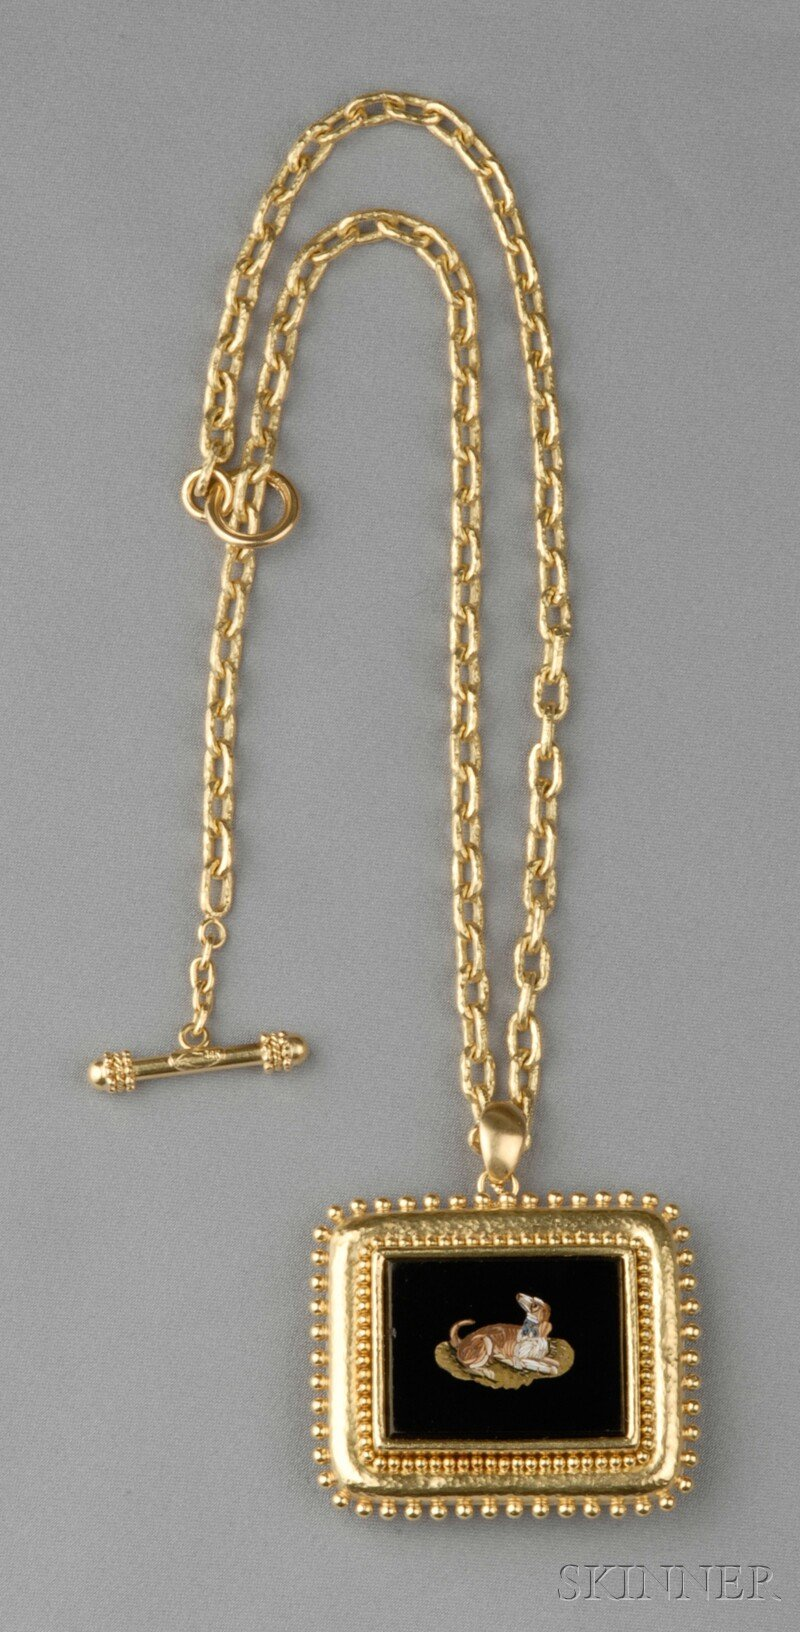 18kt Gold and Micromosaic Pendant/Brooch and Chain, Elizabeth Locke